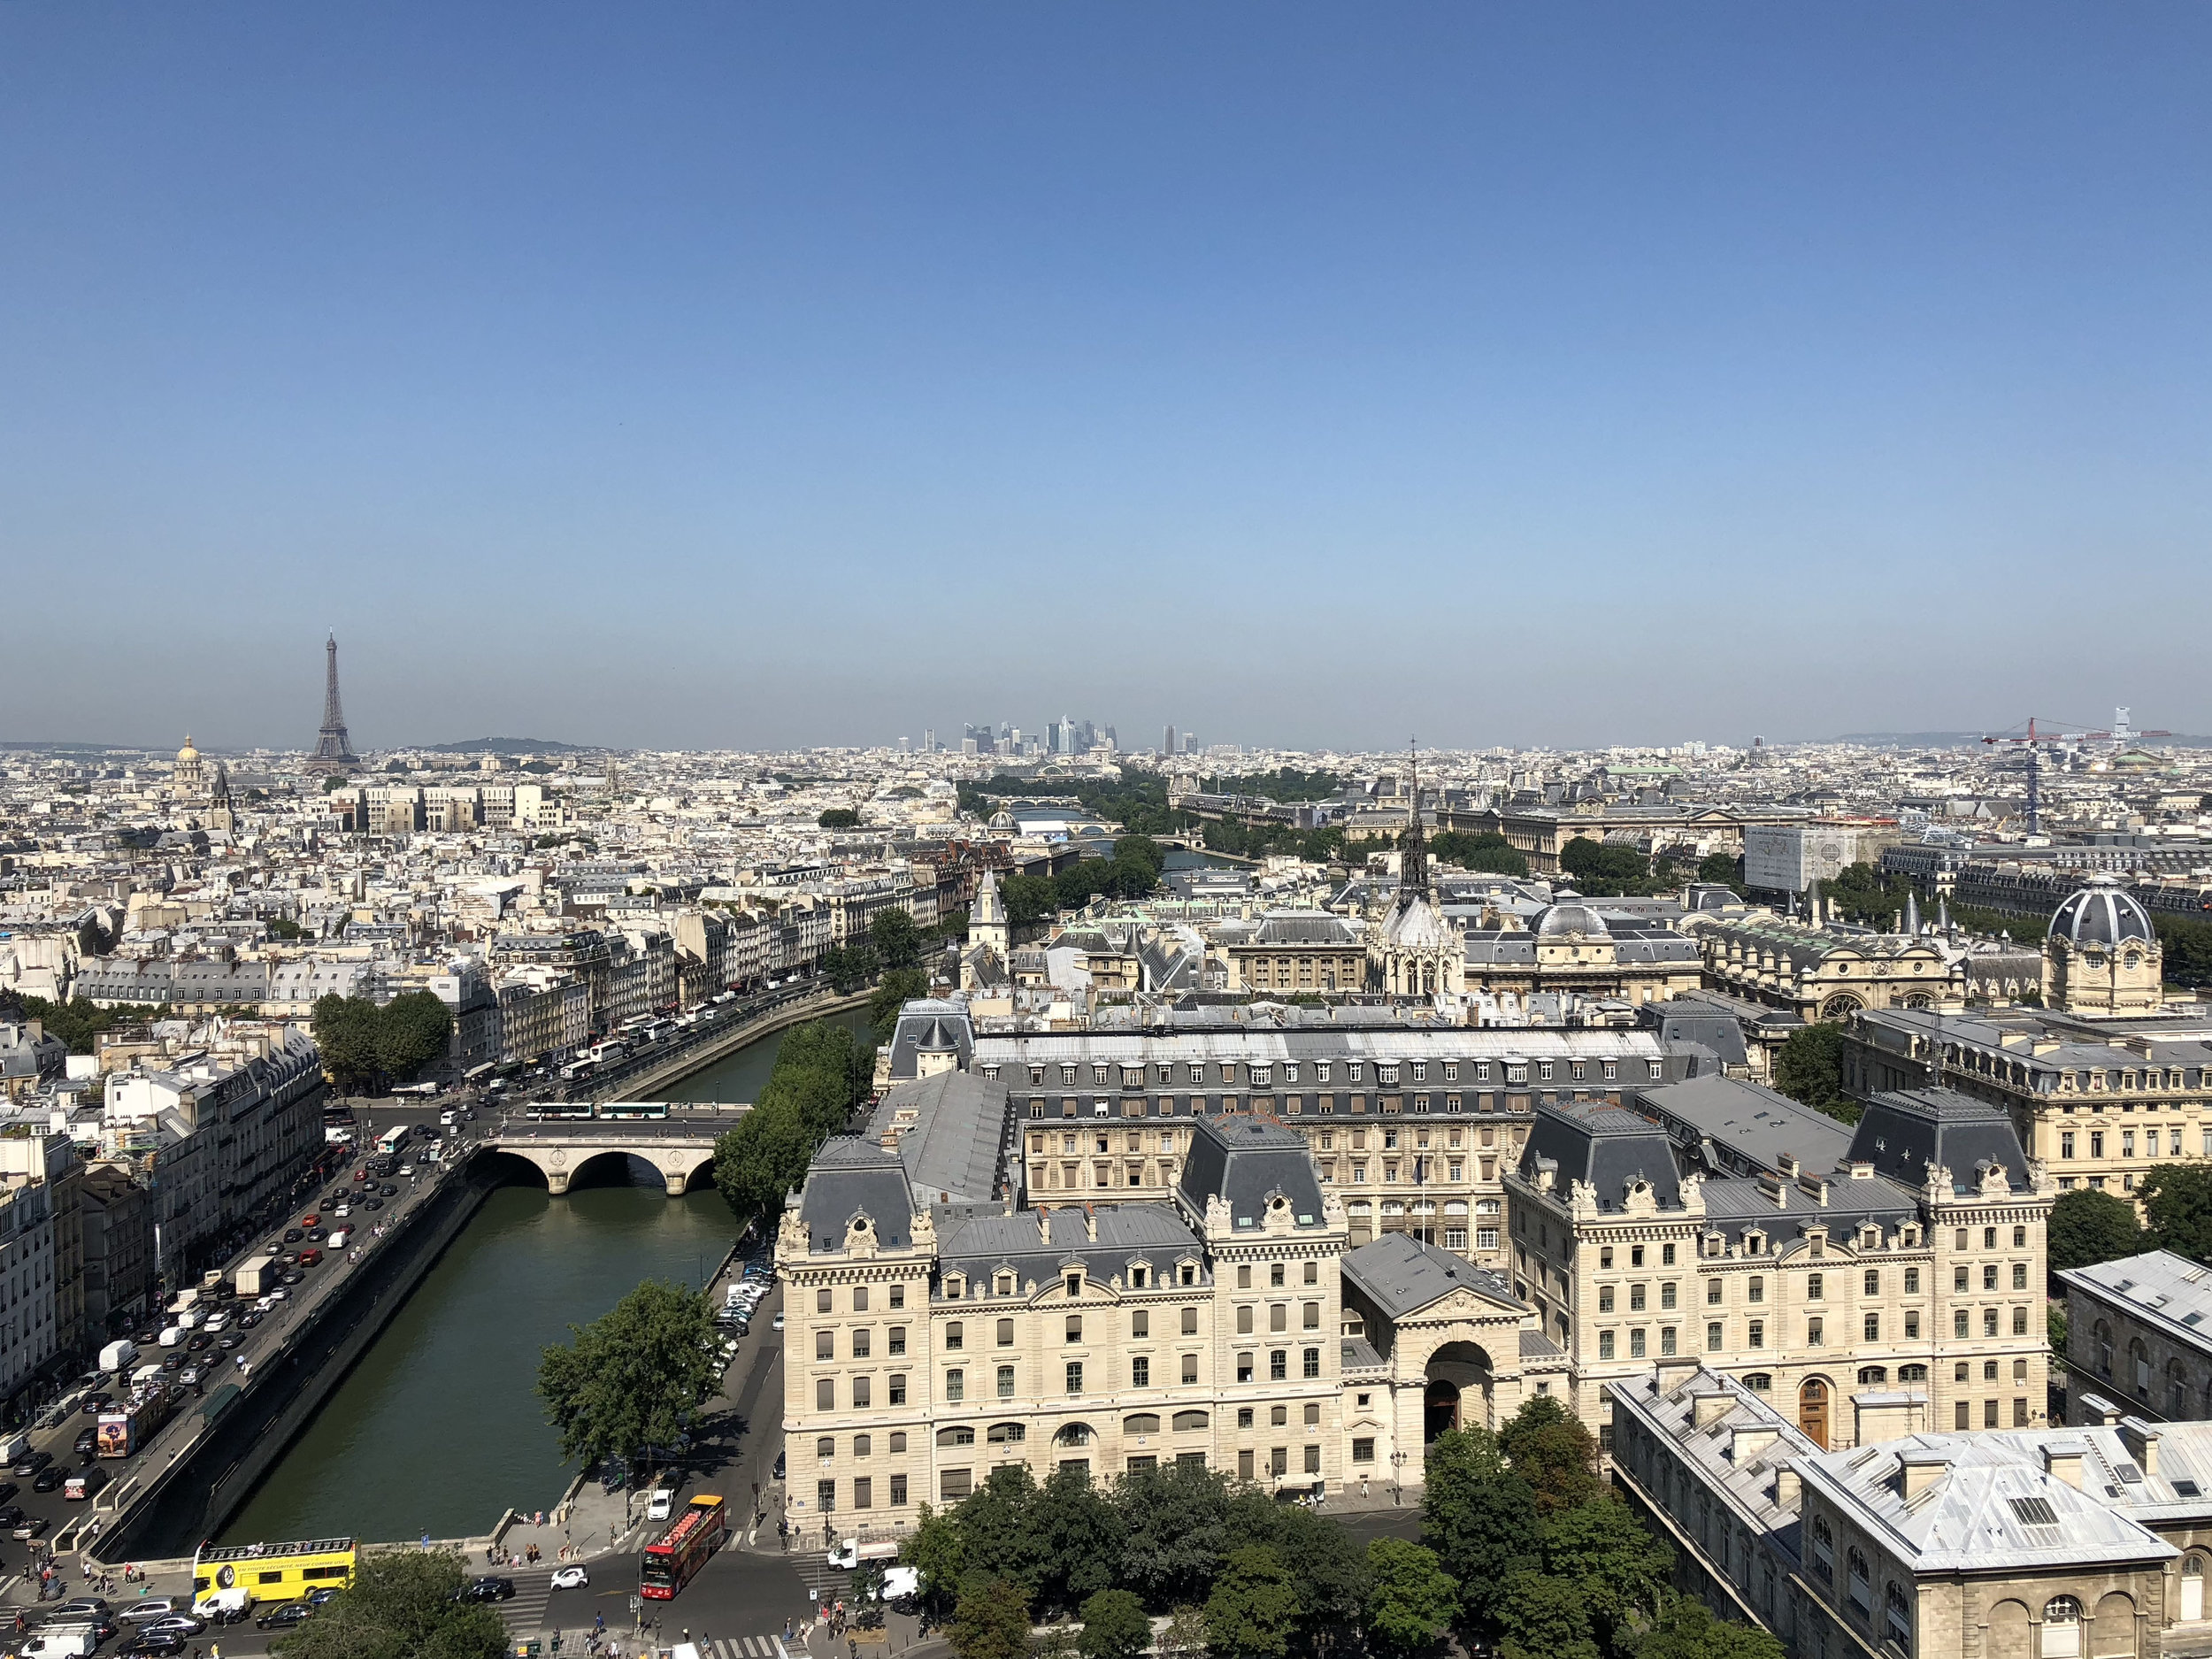 The view from the top of Notre Dame